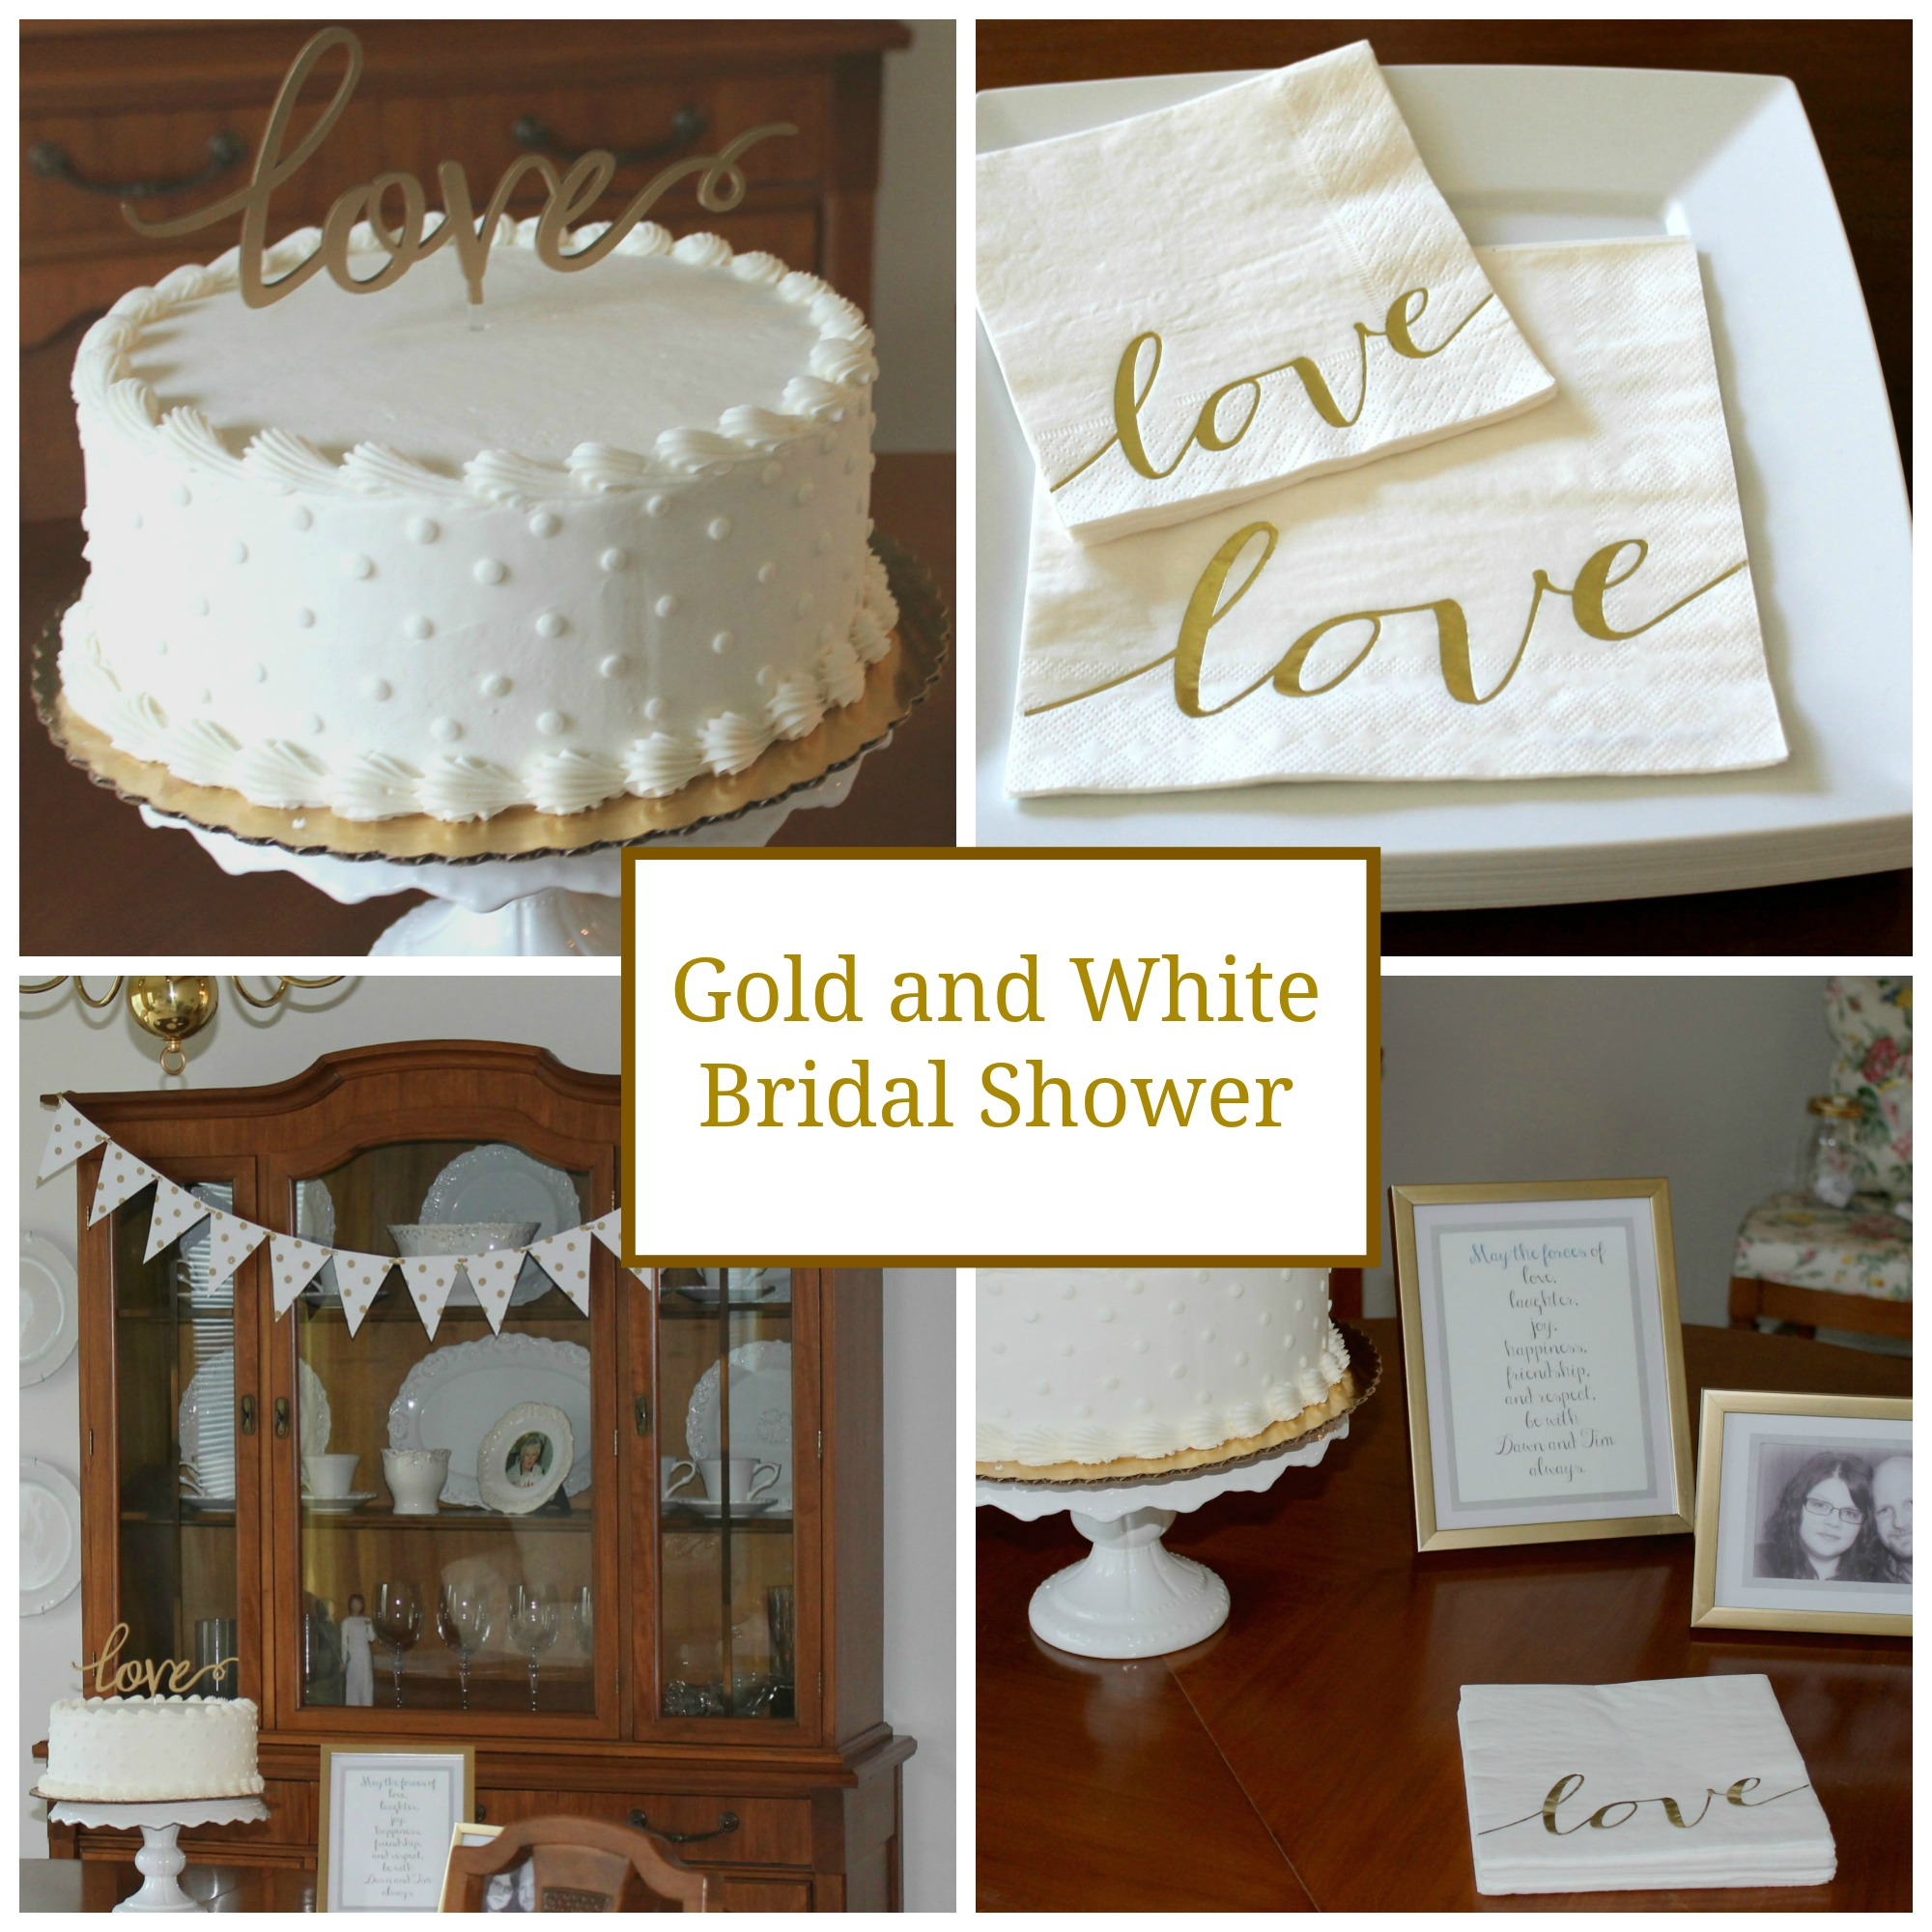 Hosting a bridal shower, gold and white theme.